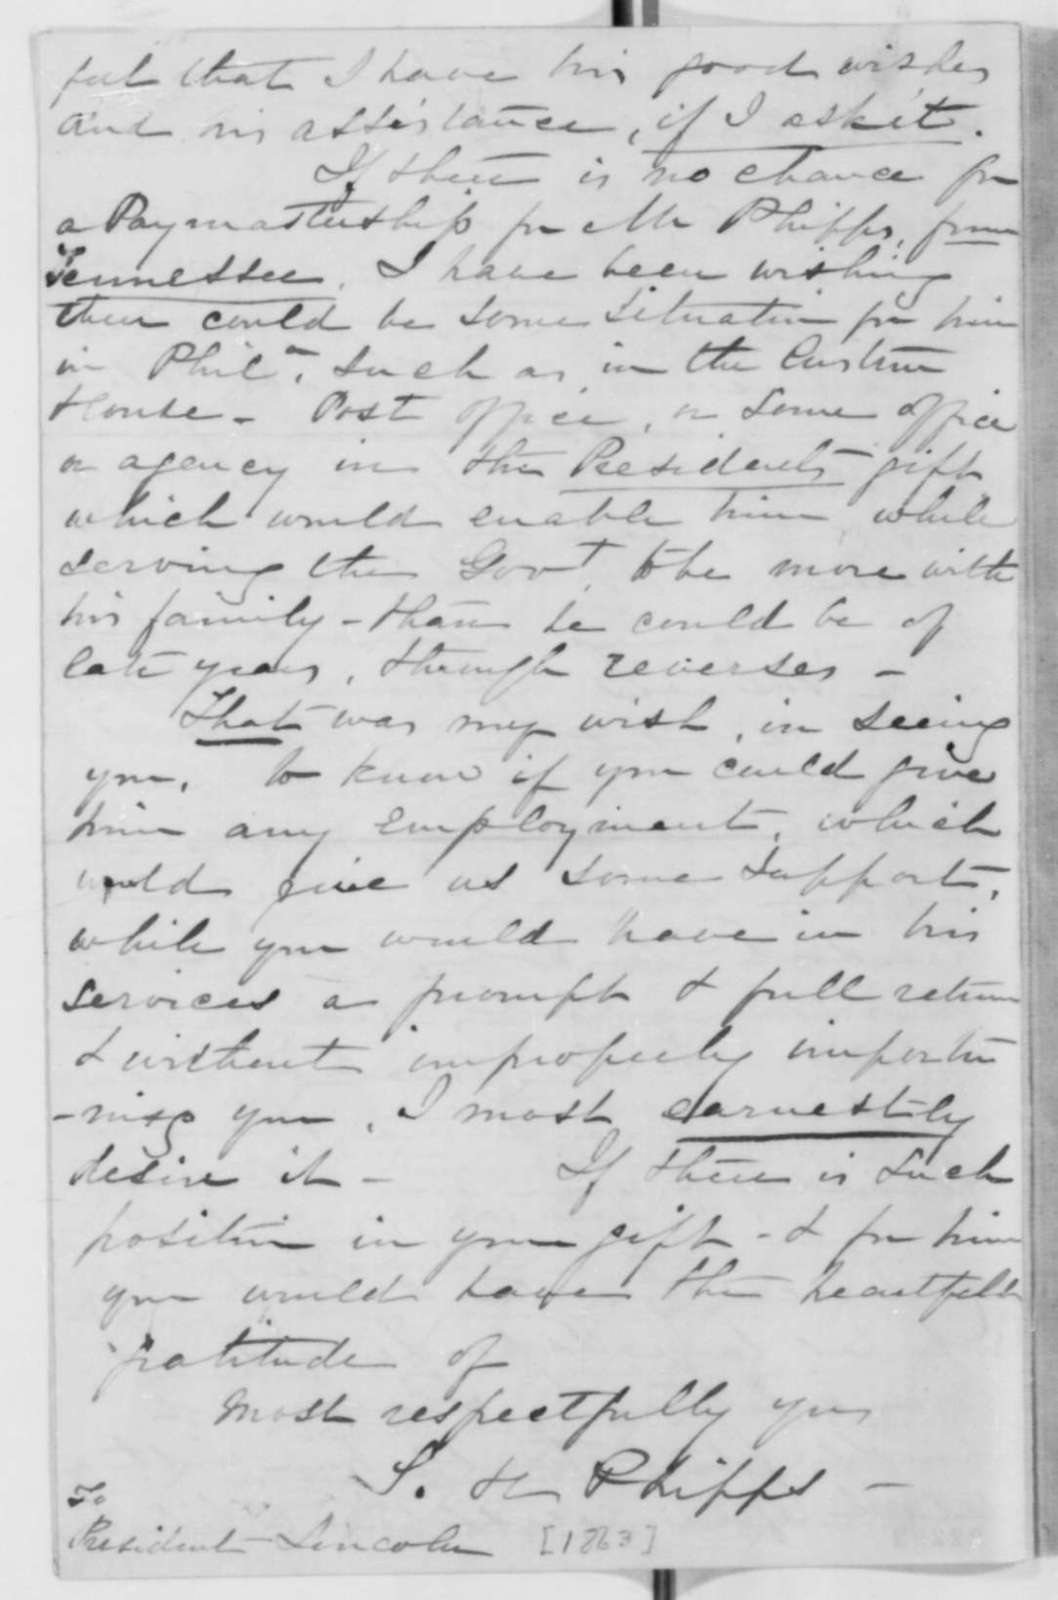 Mrs. L. H. Phipps to Abraham Lincoln, Sunday, March 08, 1863  (Seeks office for her husband)